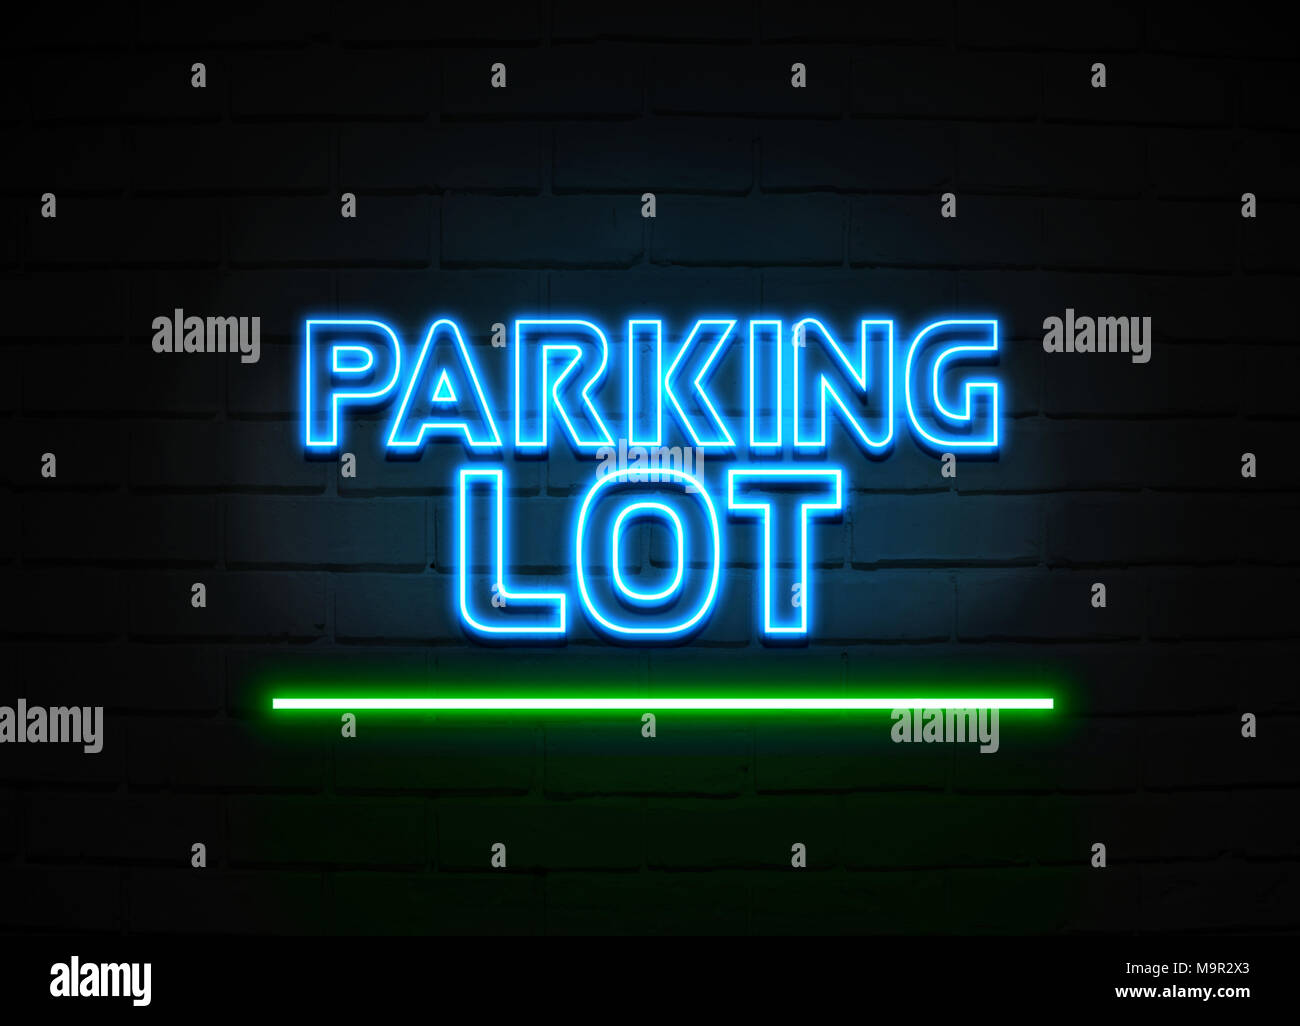 Parking Lot neon sign - Glowing Neon Sign on brickwall wall